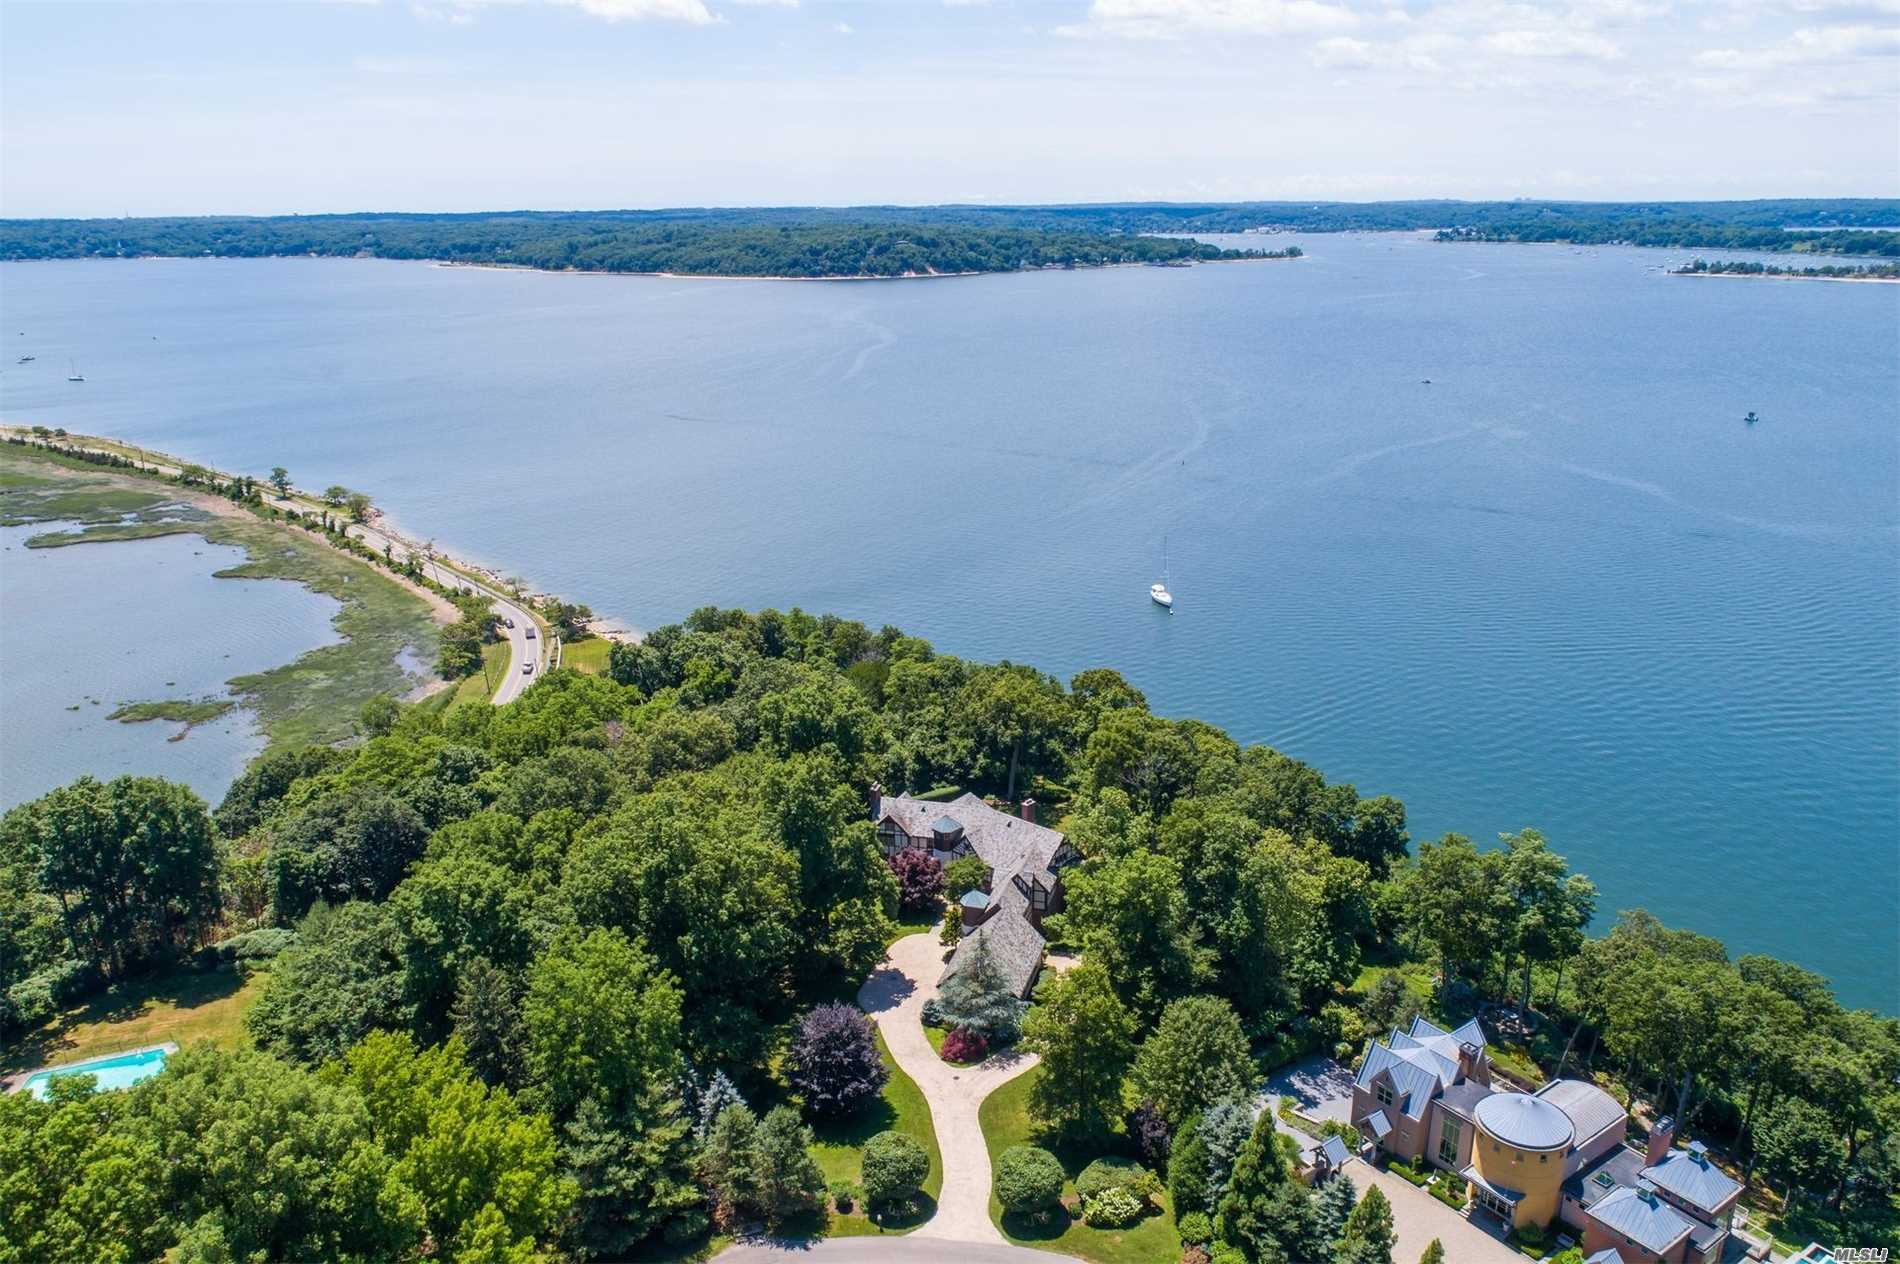 Direct Waterfront!!! Enjoy Sunsets All Year Long From This Custom Built Home (1997) A Fabulous Hampton Alternative! 1 Hour From Manhattan. Spectacular Panoramic Vista To Centre Island And Connecticut. Fort Hill Membership Dues $1, 800 Per Year Includes Beach, Mooring And Tennis.